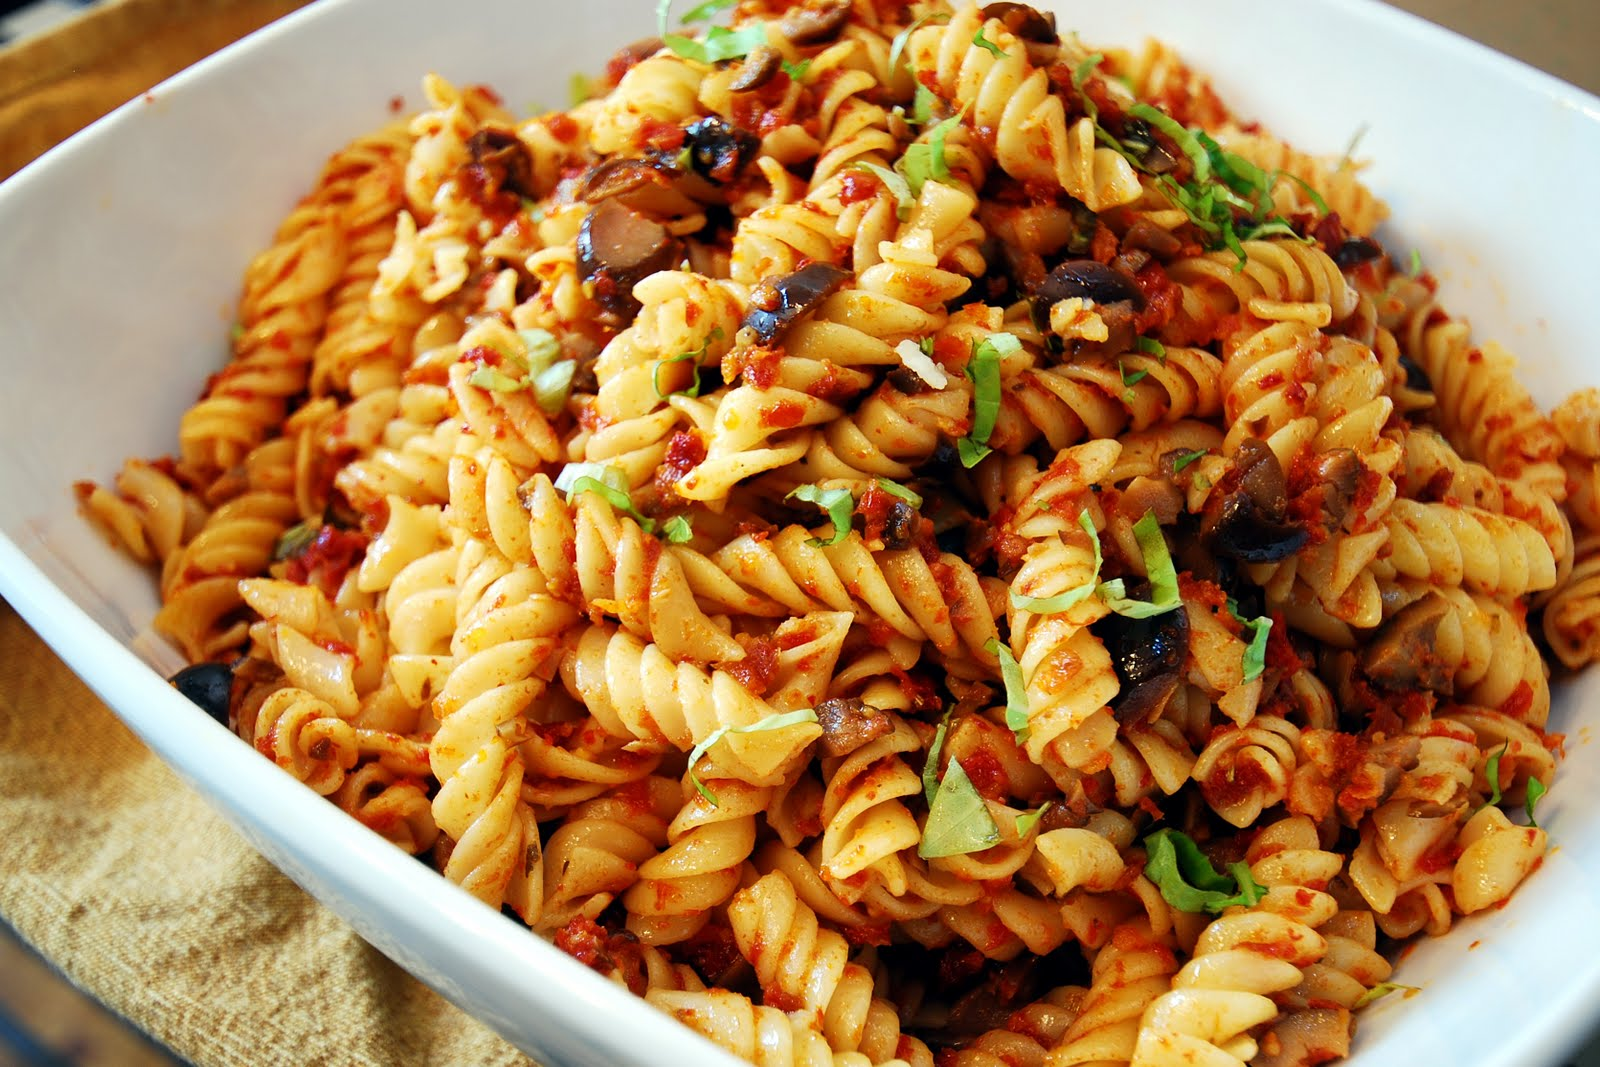 Have Spork, Will Travel: Sun-dried Tomato Pasta Salad